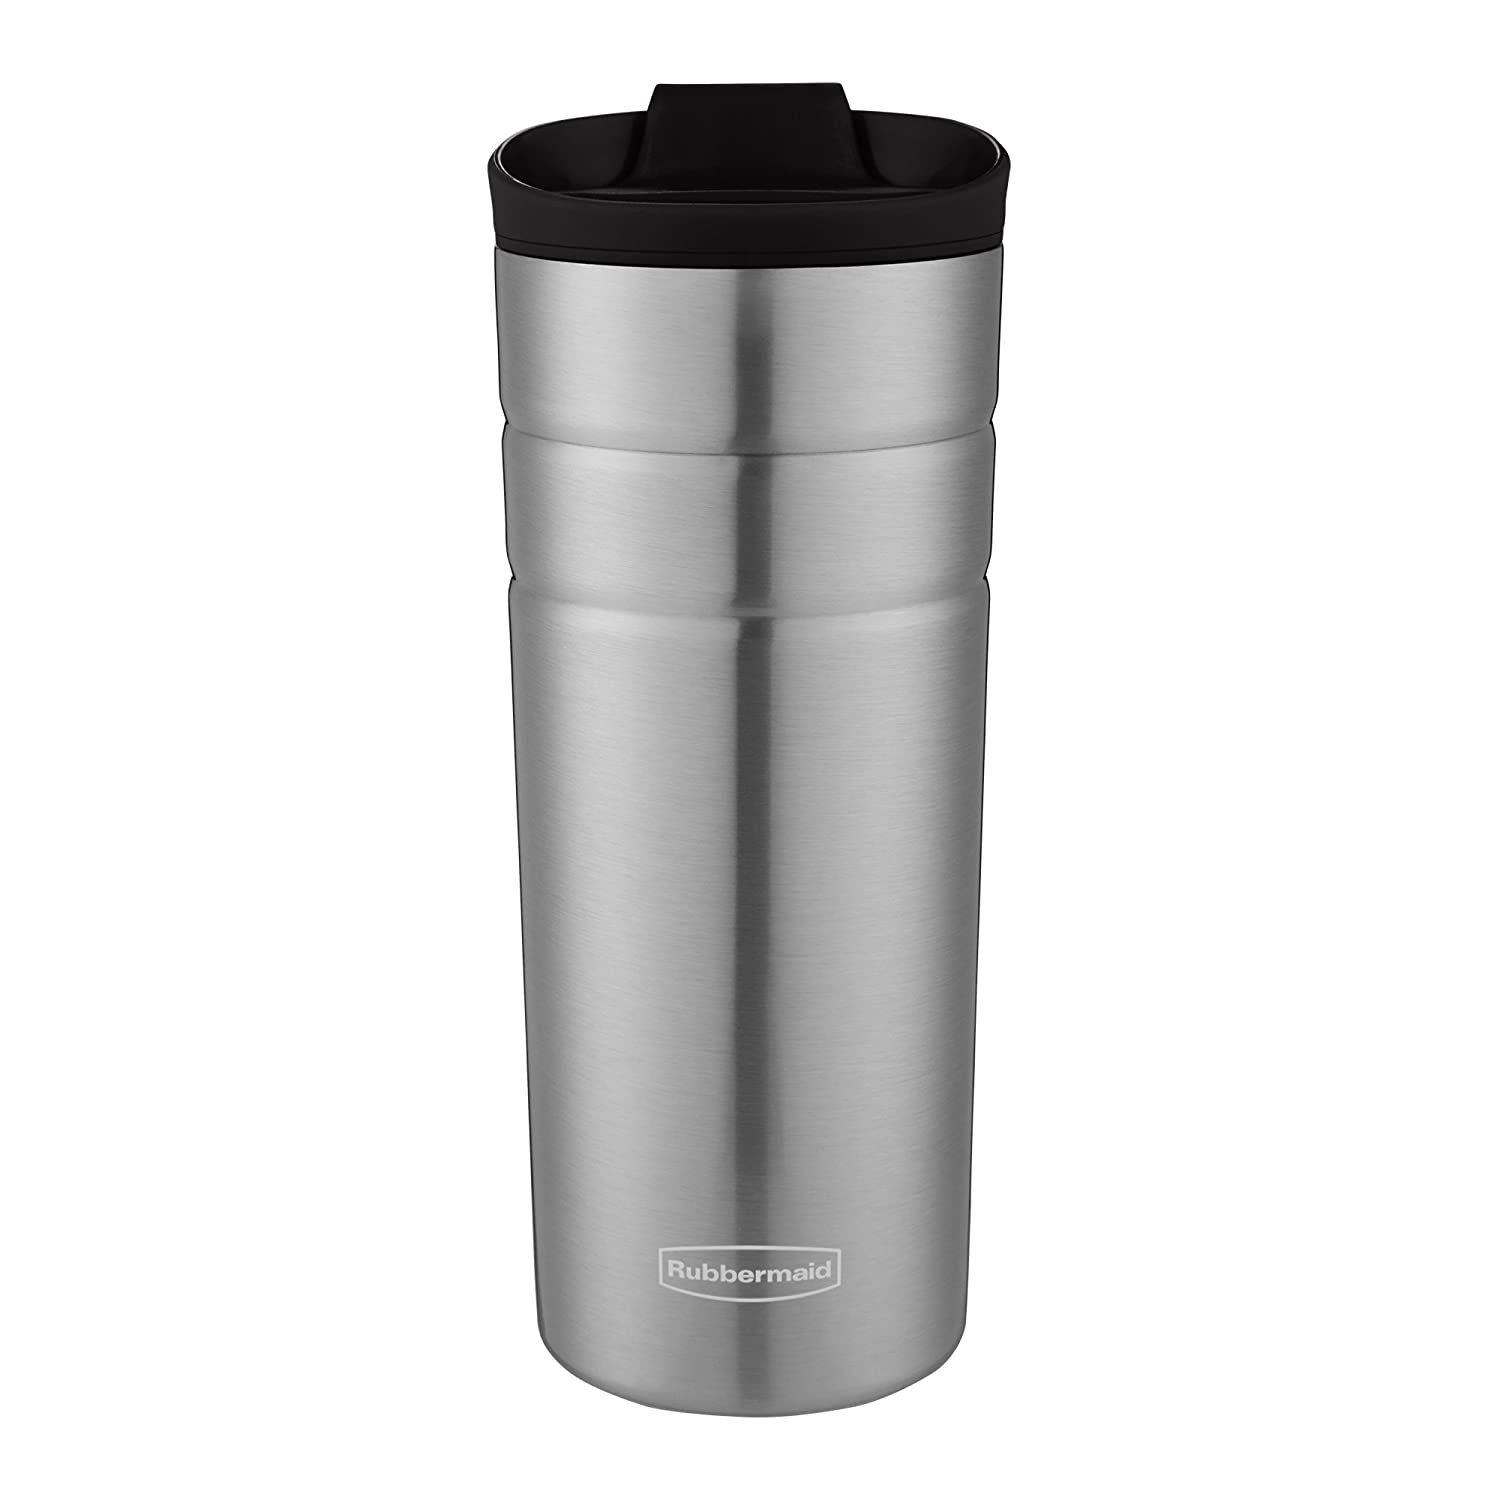 Rubbermaid Leak Proof Flip Lid Thermal Bottle, 16 oz., Black